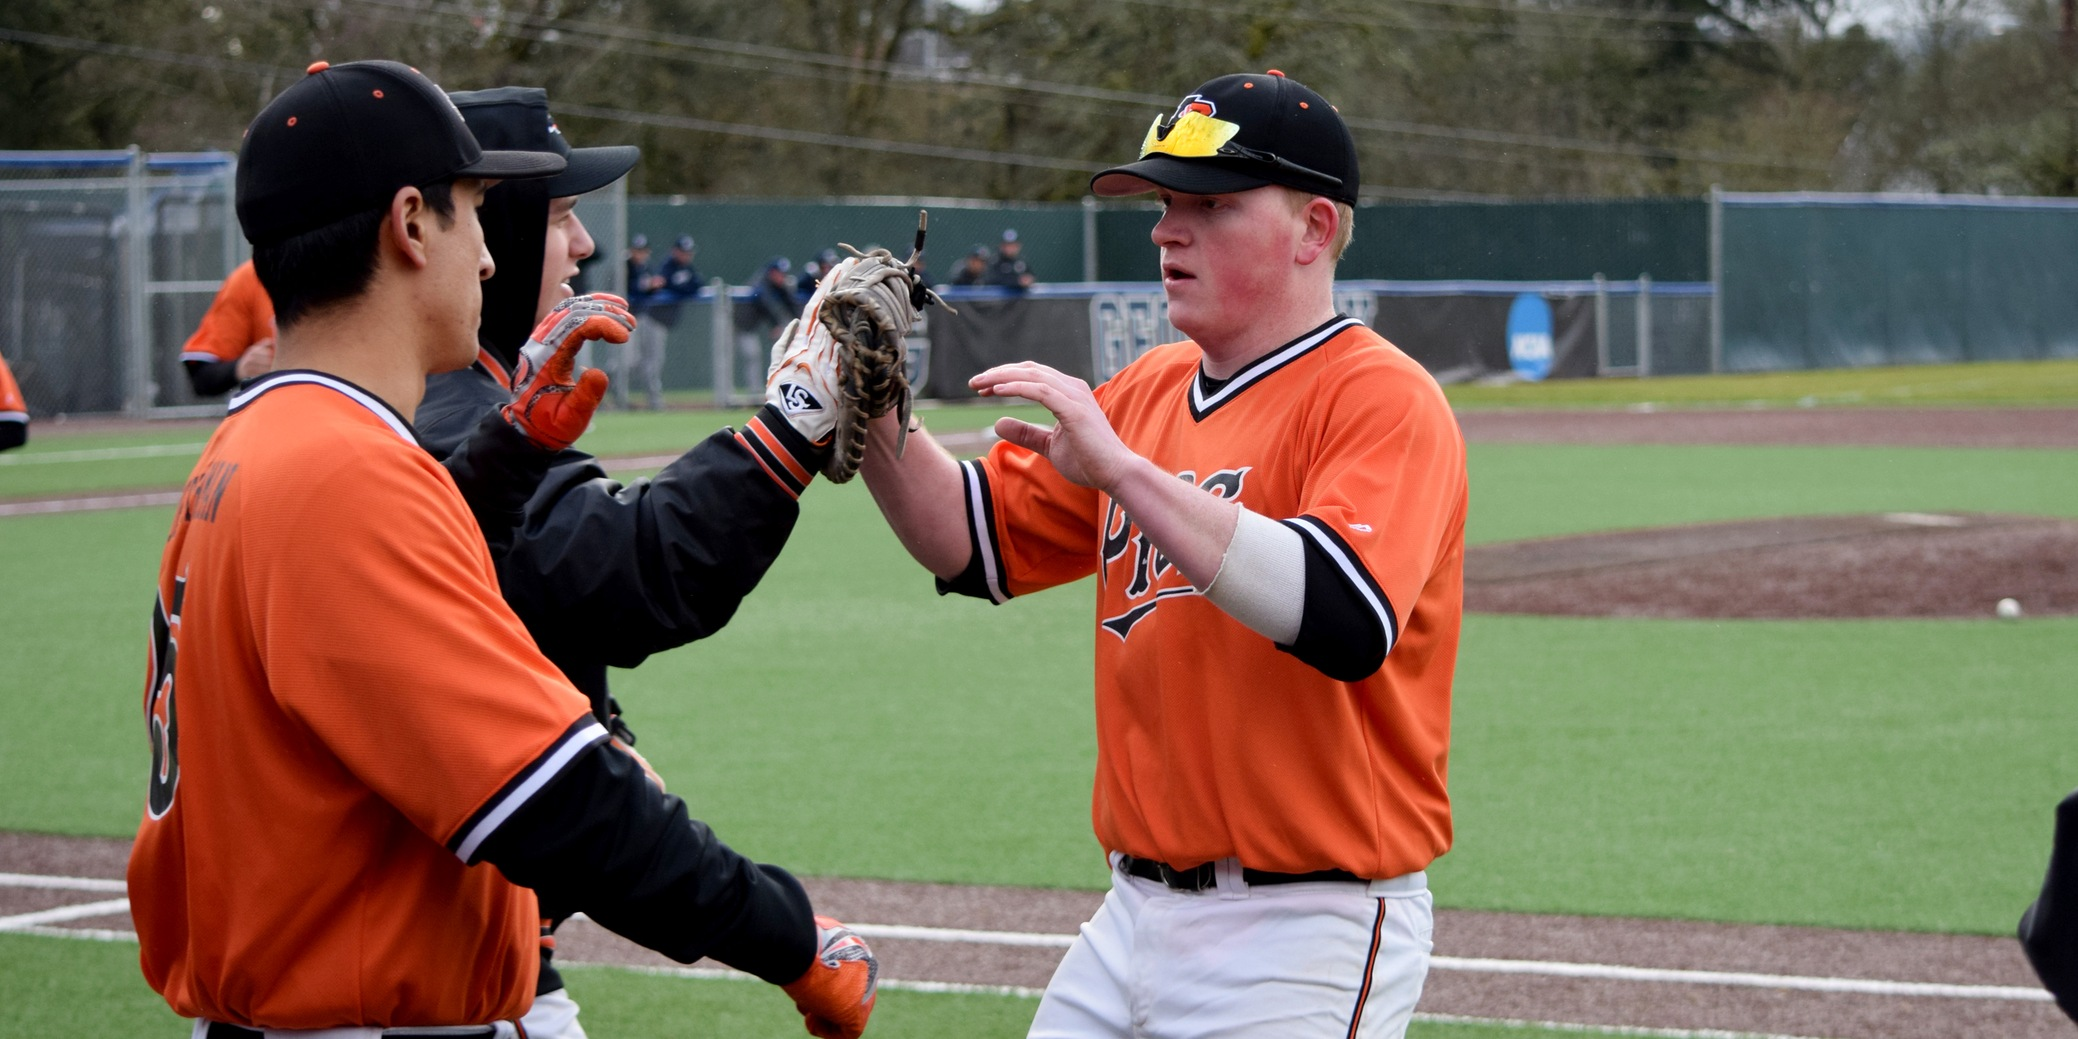 Pios win first NWC series over George Fox